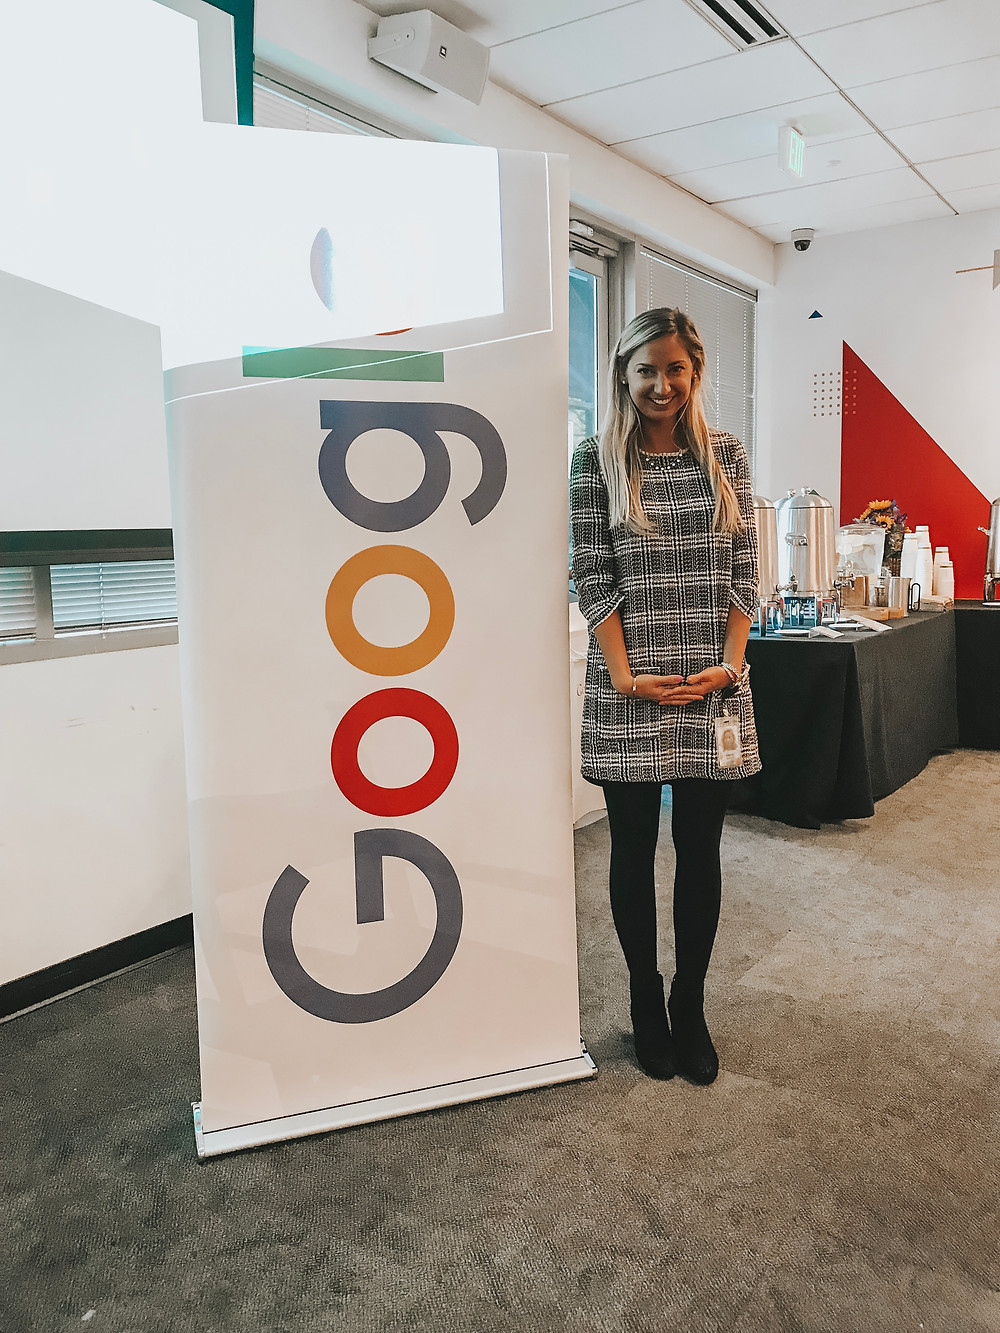 Lena sernoff at Google giving tips on Google interview questions